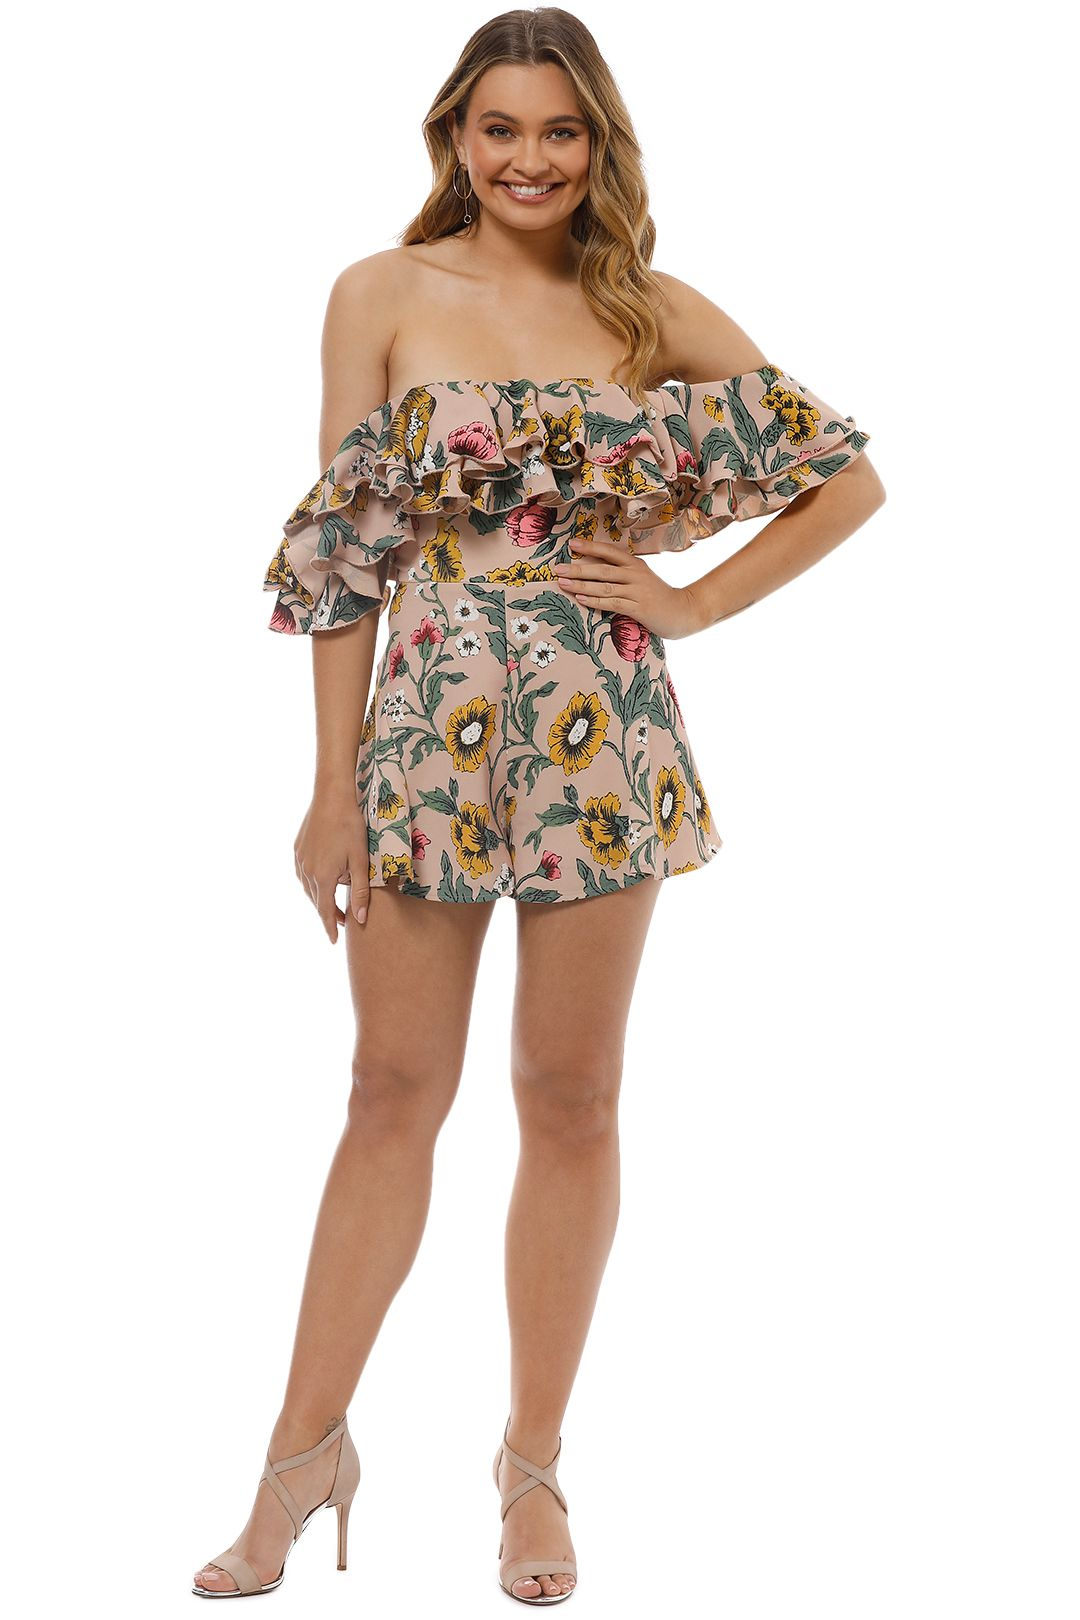 Cameo - Immerse Playsuit - Blush - Front